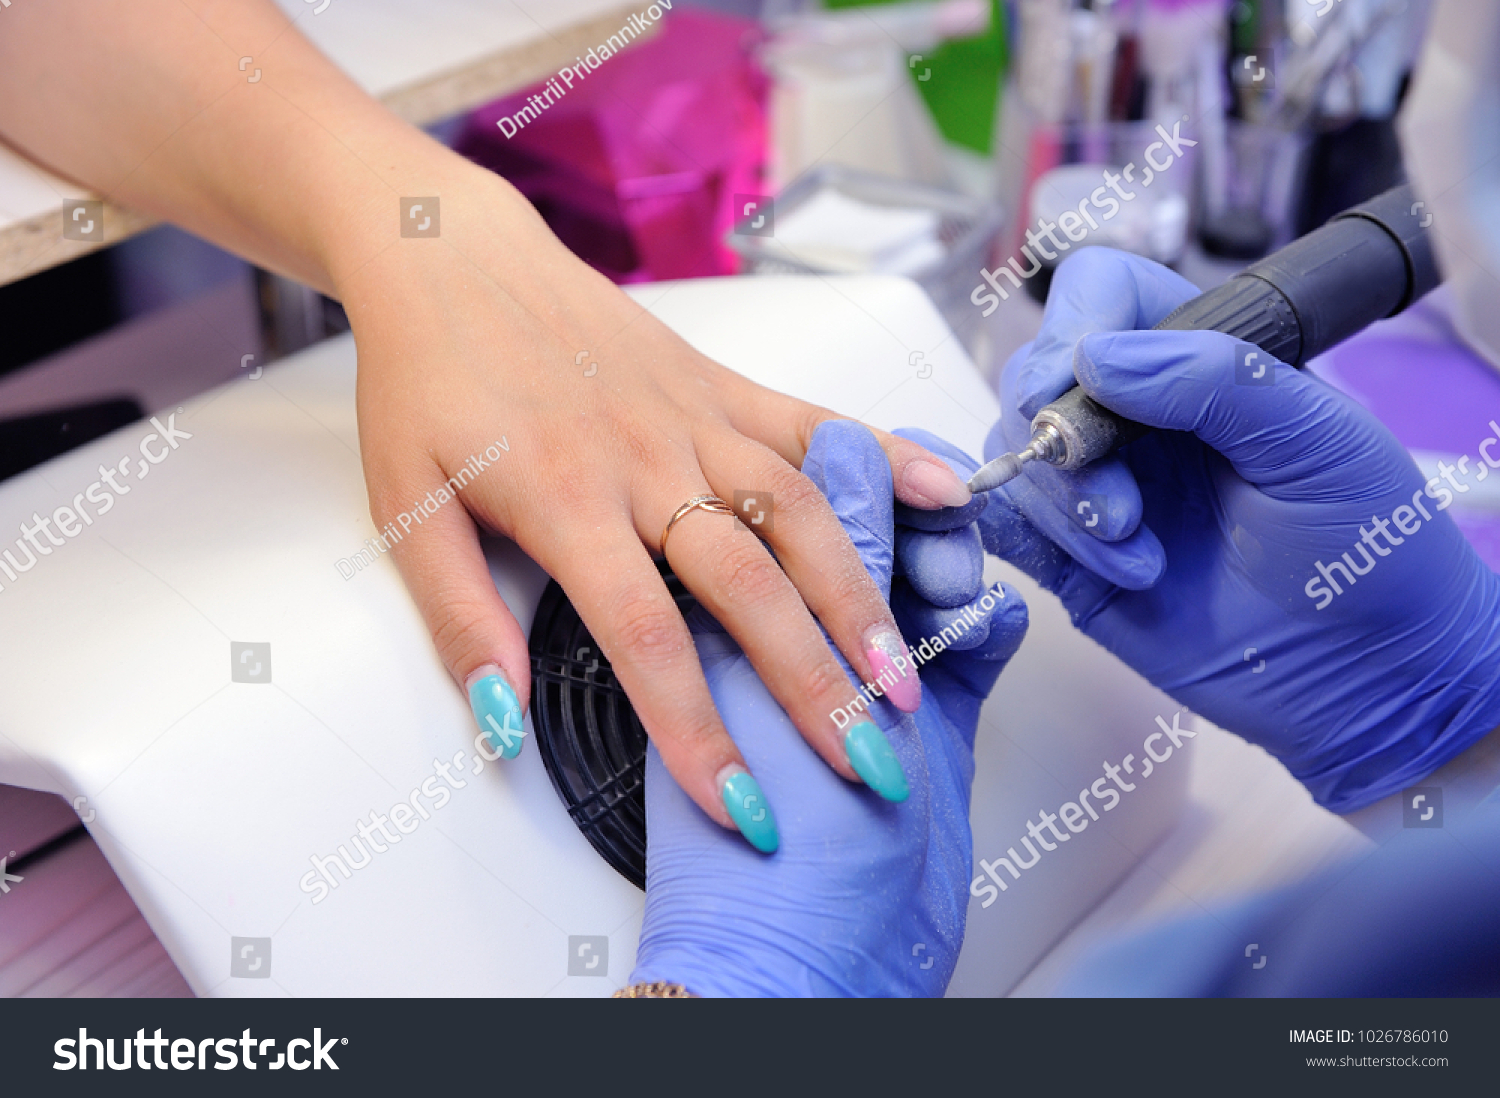 Repair Old Gel Nails Nail Grinder Stock Photo & Image (Royalty-Free ...